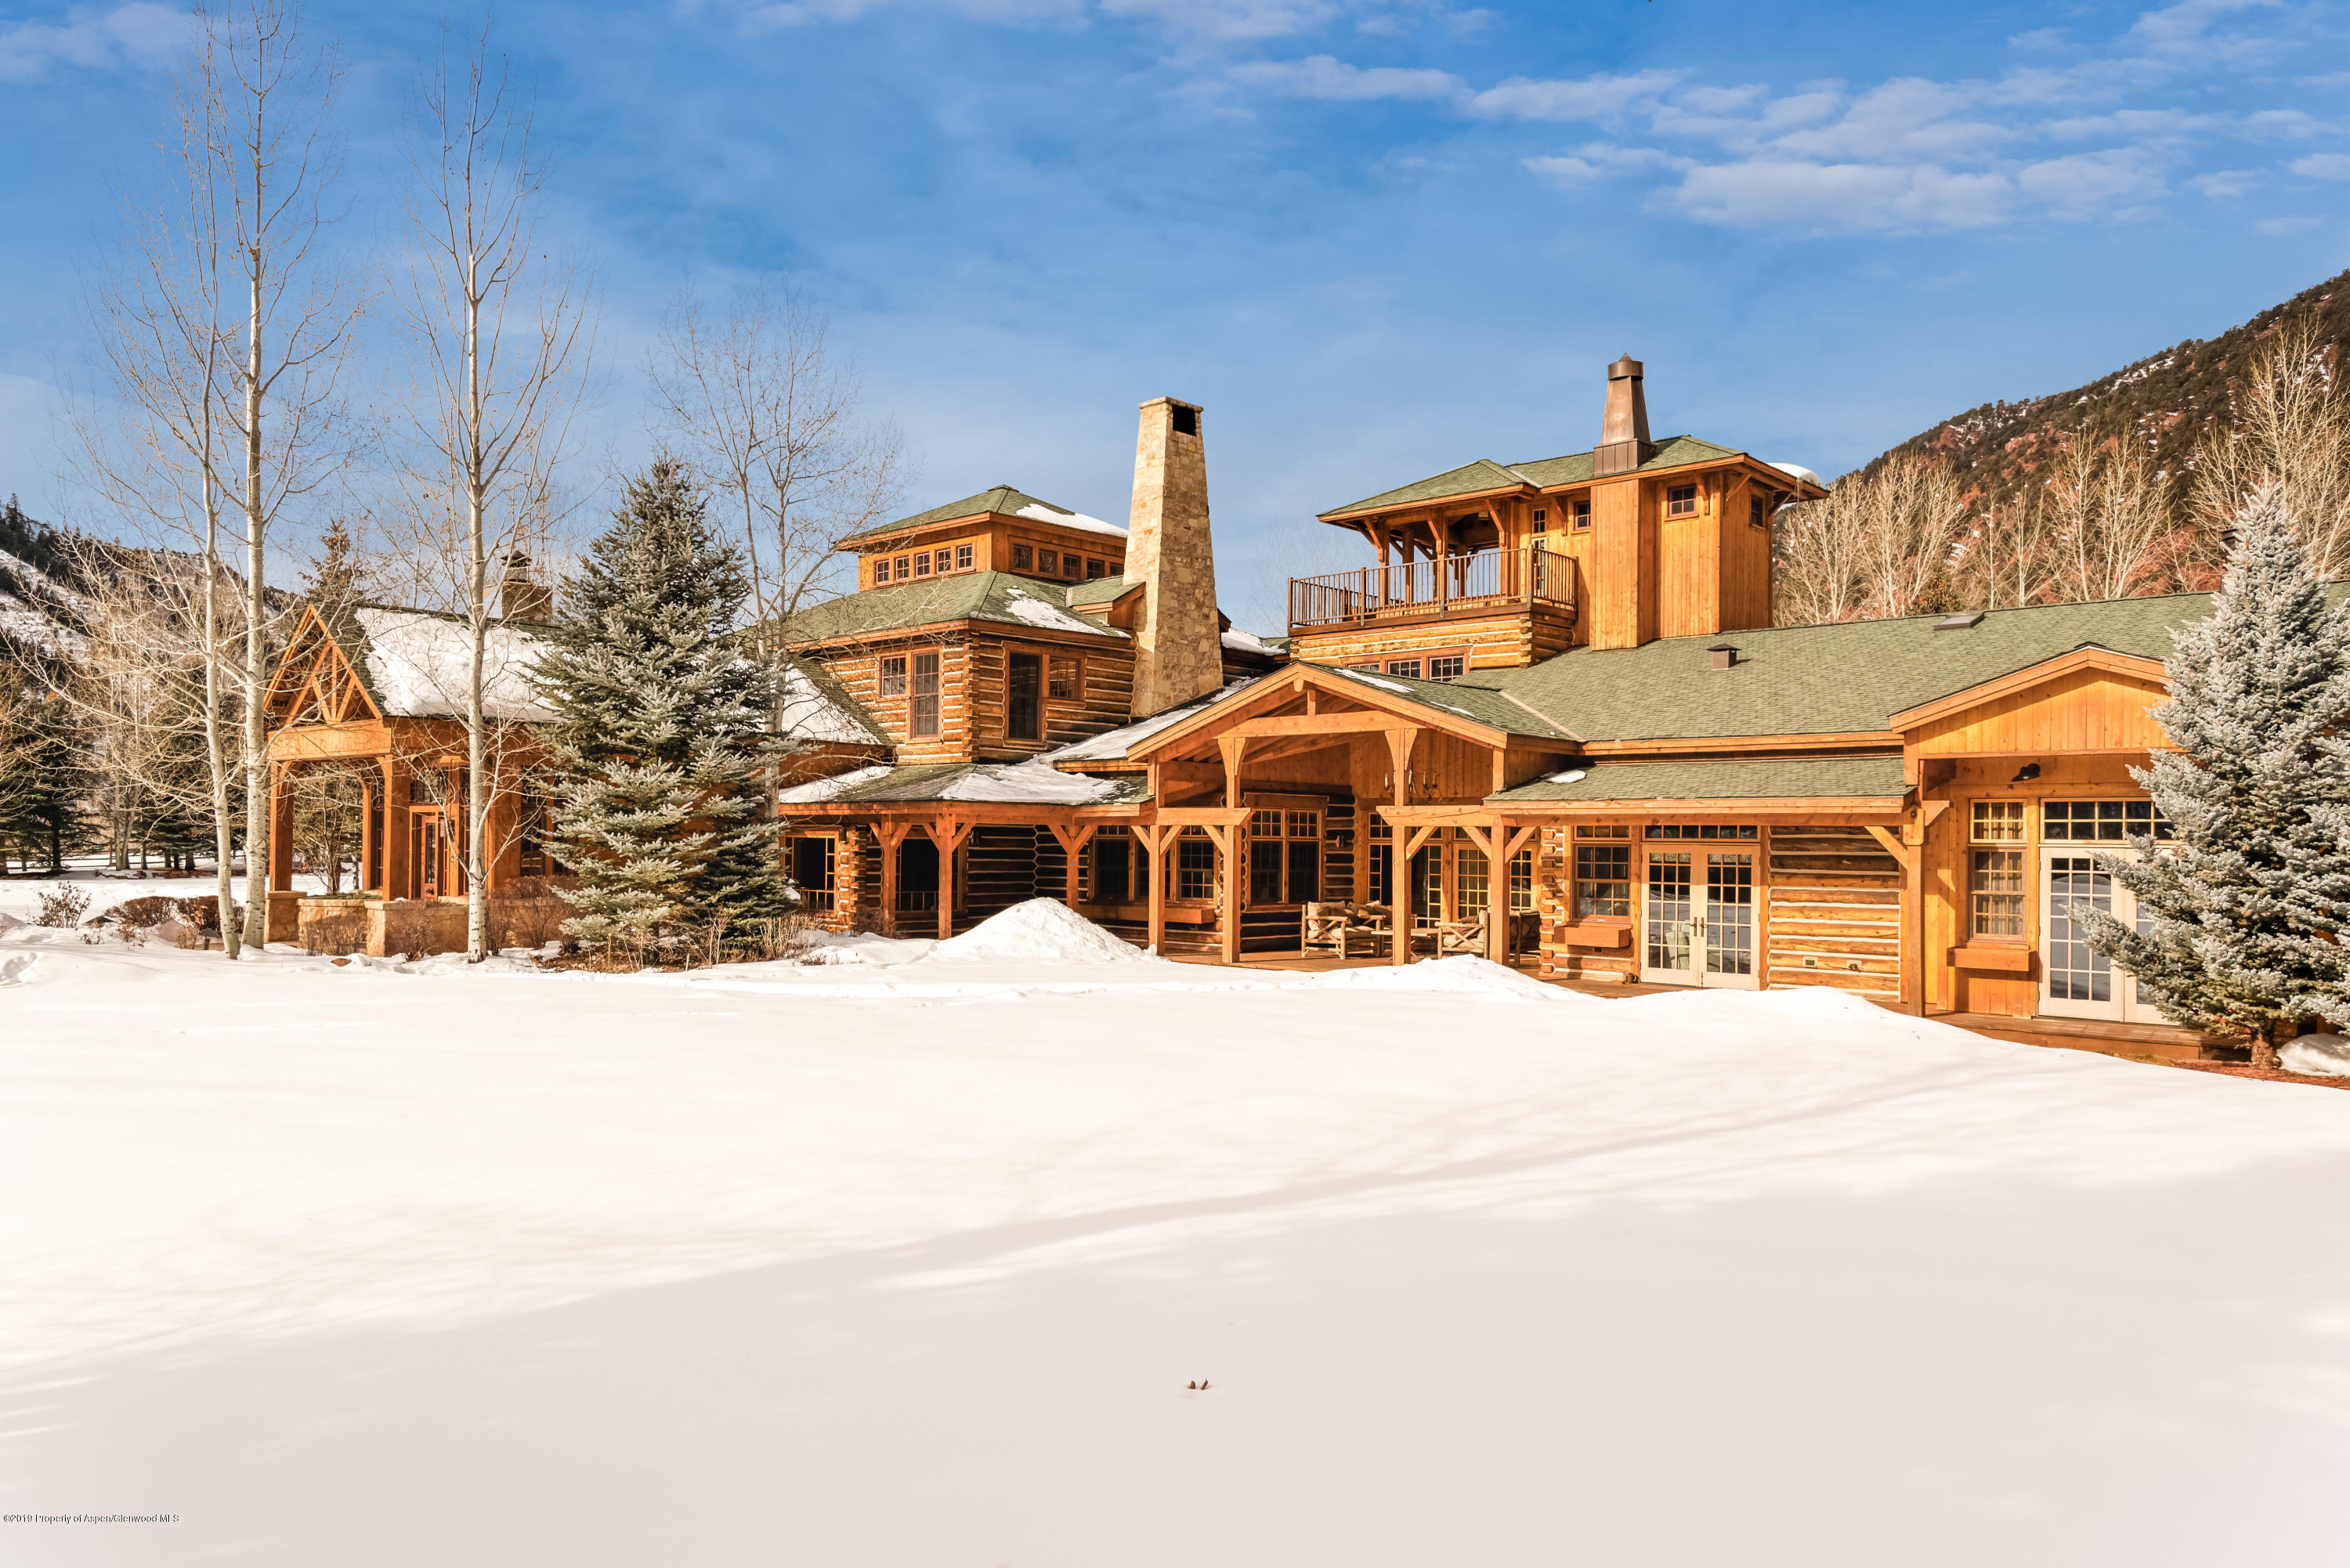 MLS# 135595 - 2 - 50 E River Ranch Road, Snowmass, CO 81654